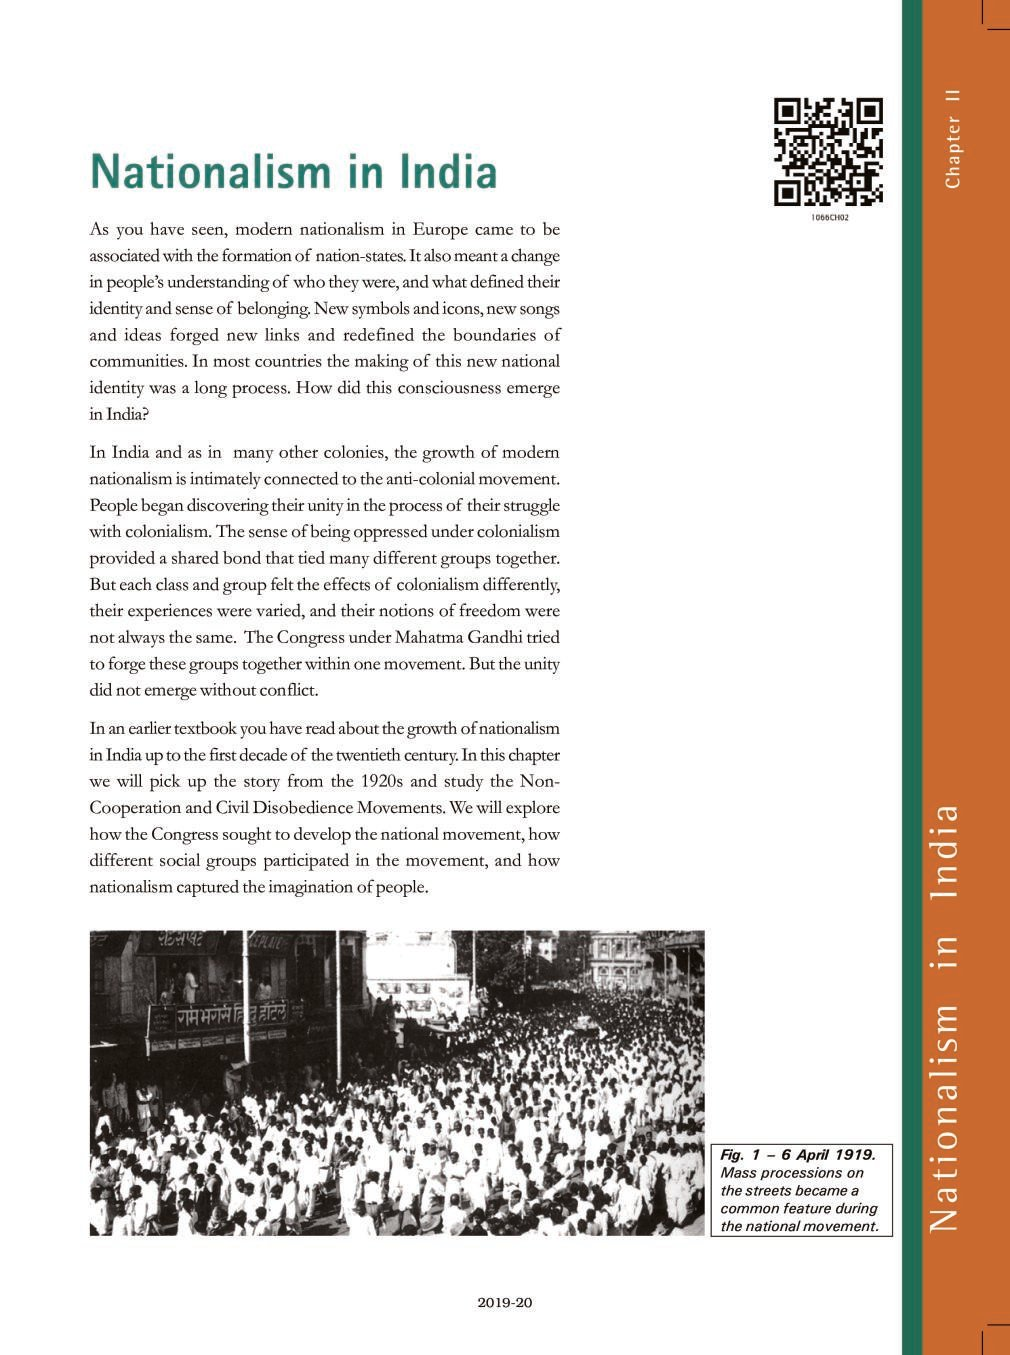 NCERT Book Class 10 Social Science (History) Chapter 2 Nationalism in India - Page 1